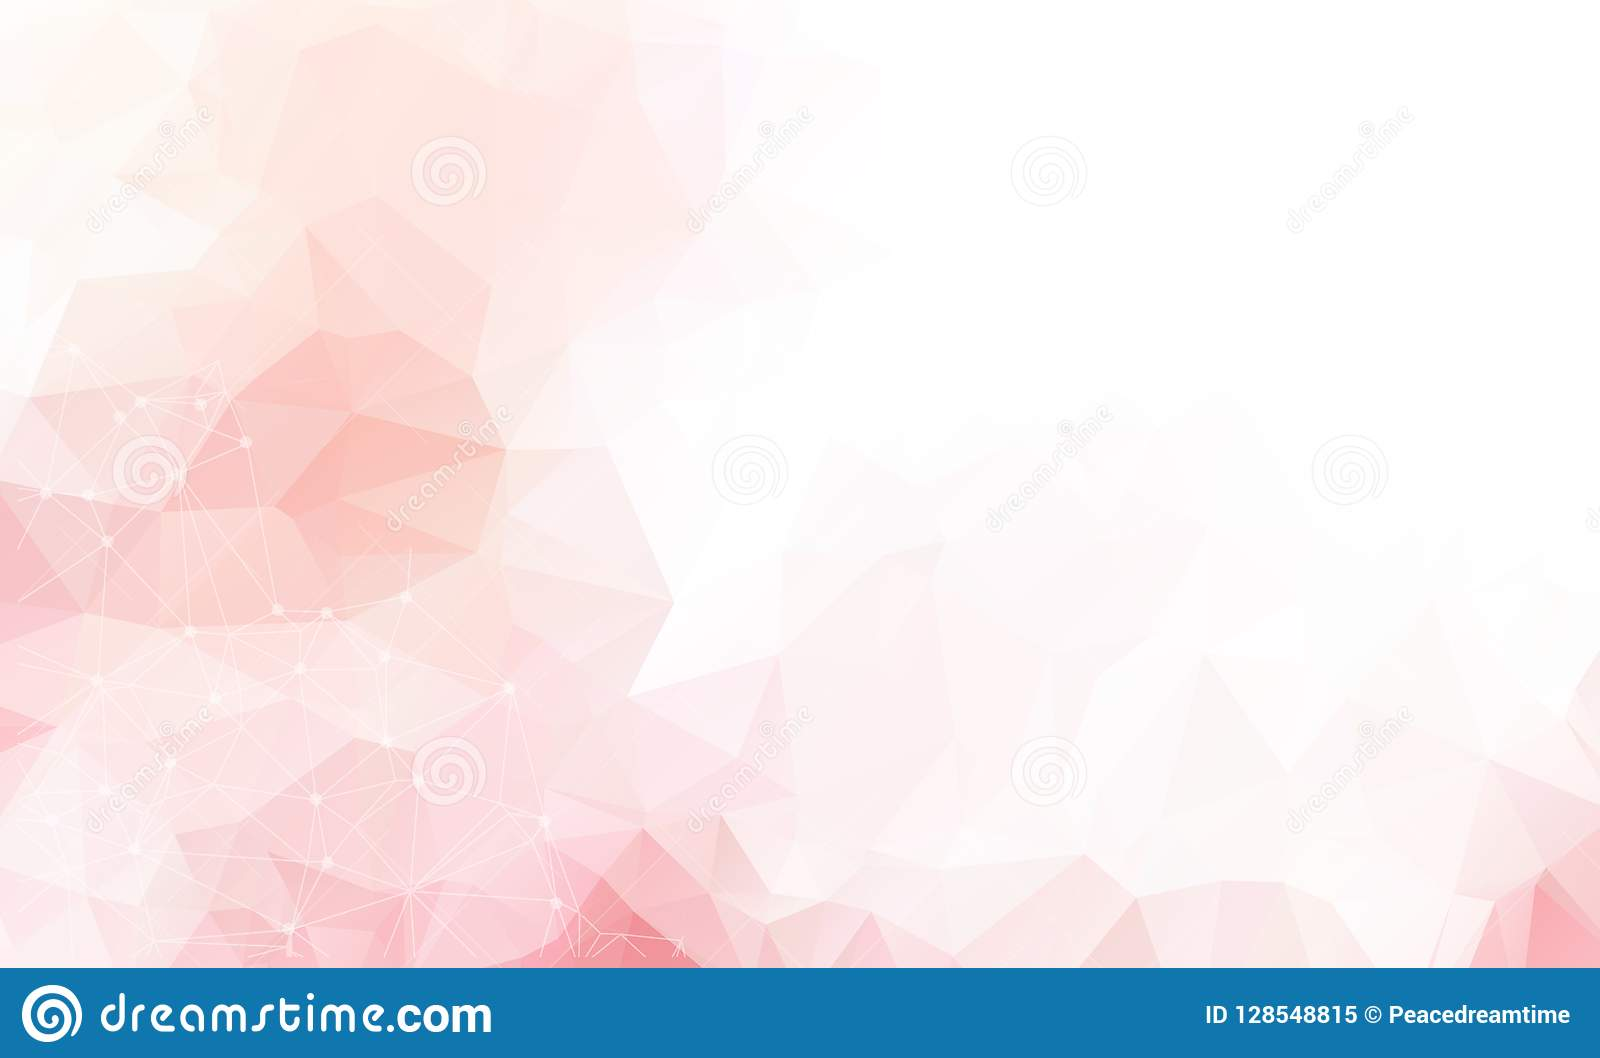 Light Pink vector background with dots and lines. Abstract illustration with colorful discs and triangles. Beautiful design for yo